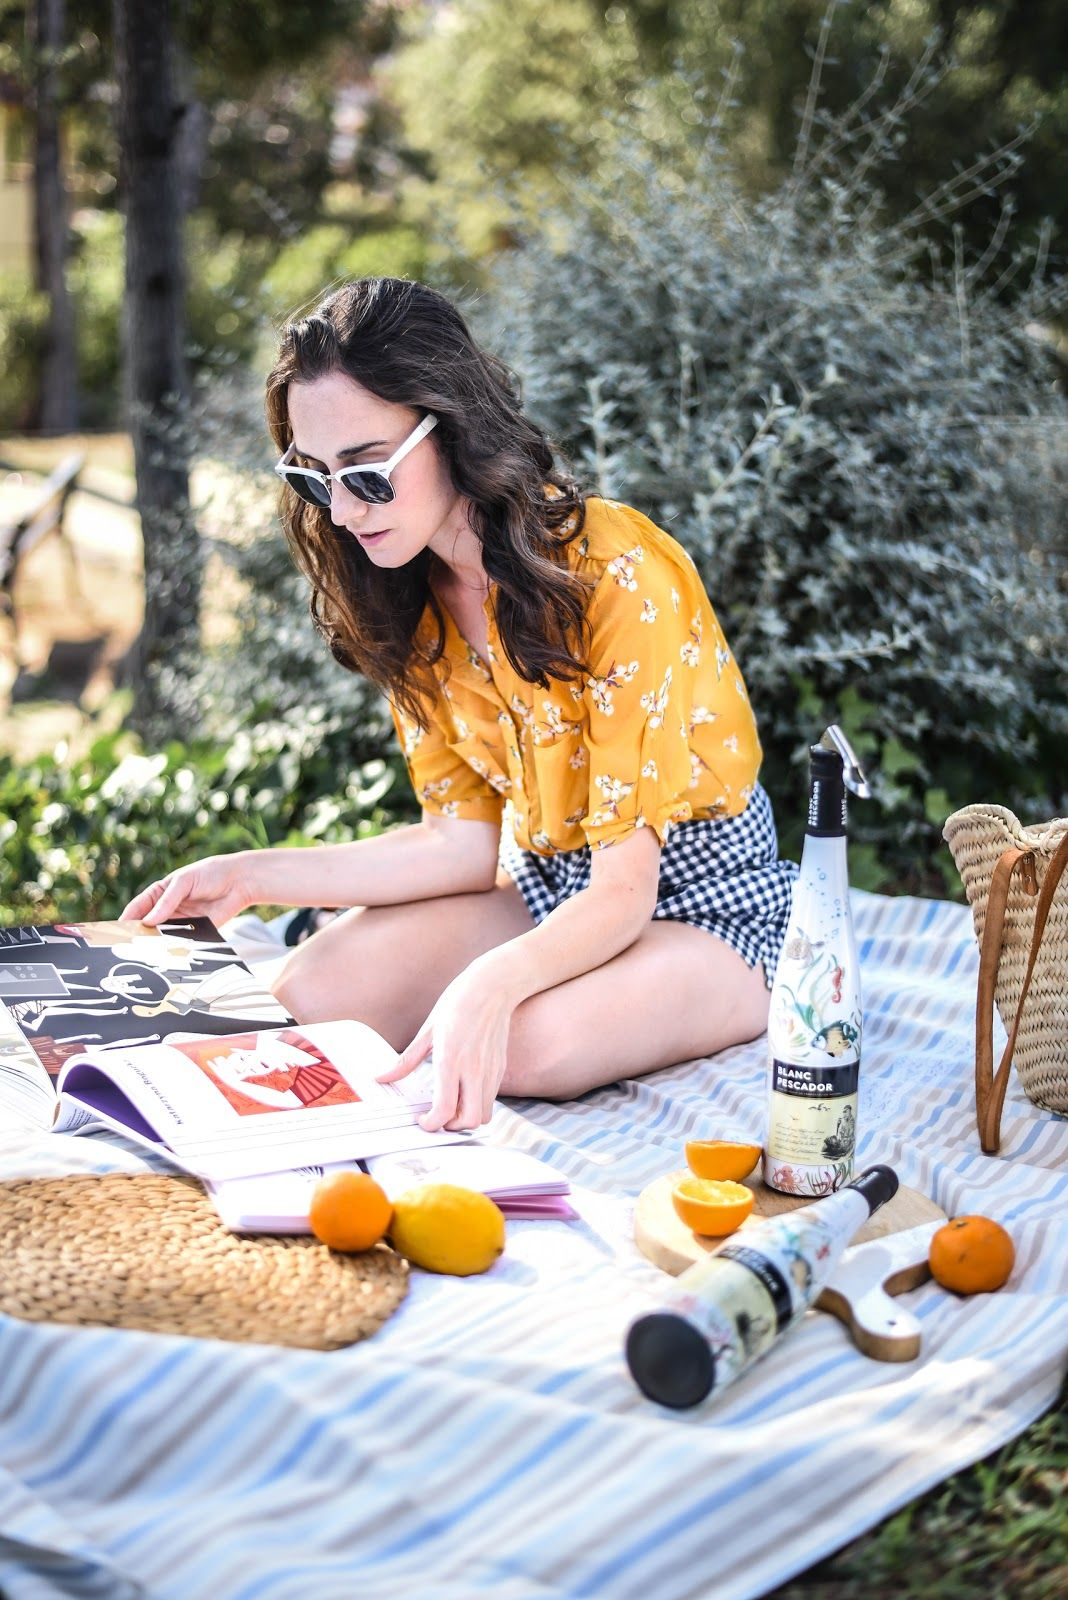 Picnic Fashion Photography Gingham Street Style Look By Emerjadesign Picnic Pinterest